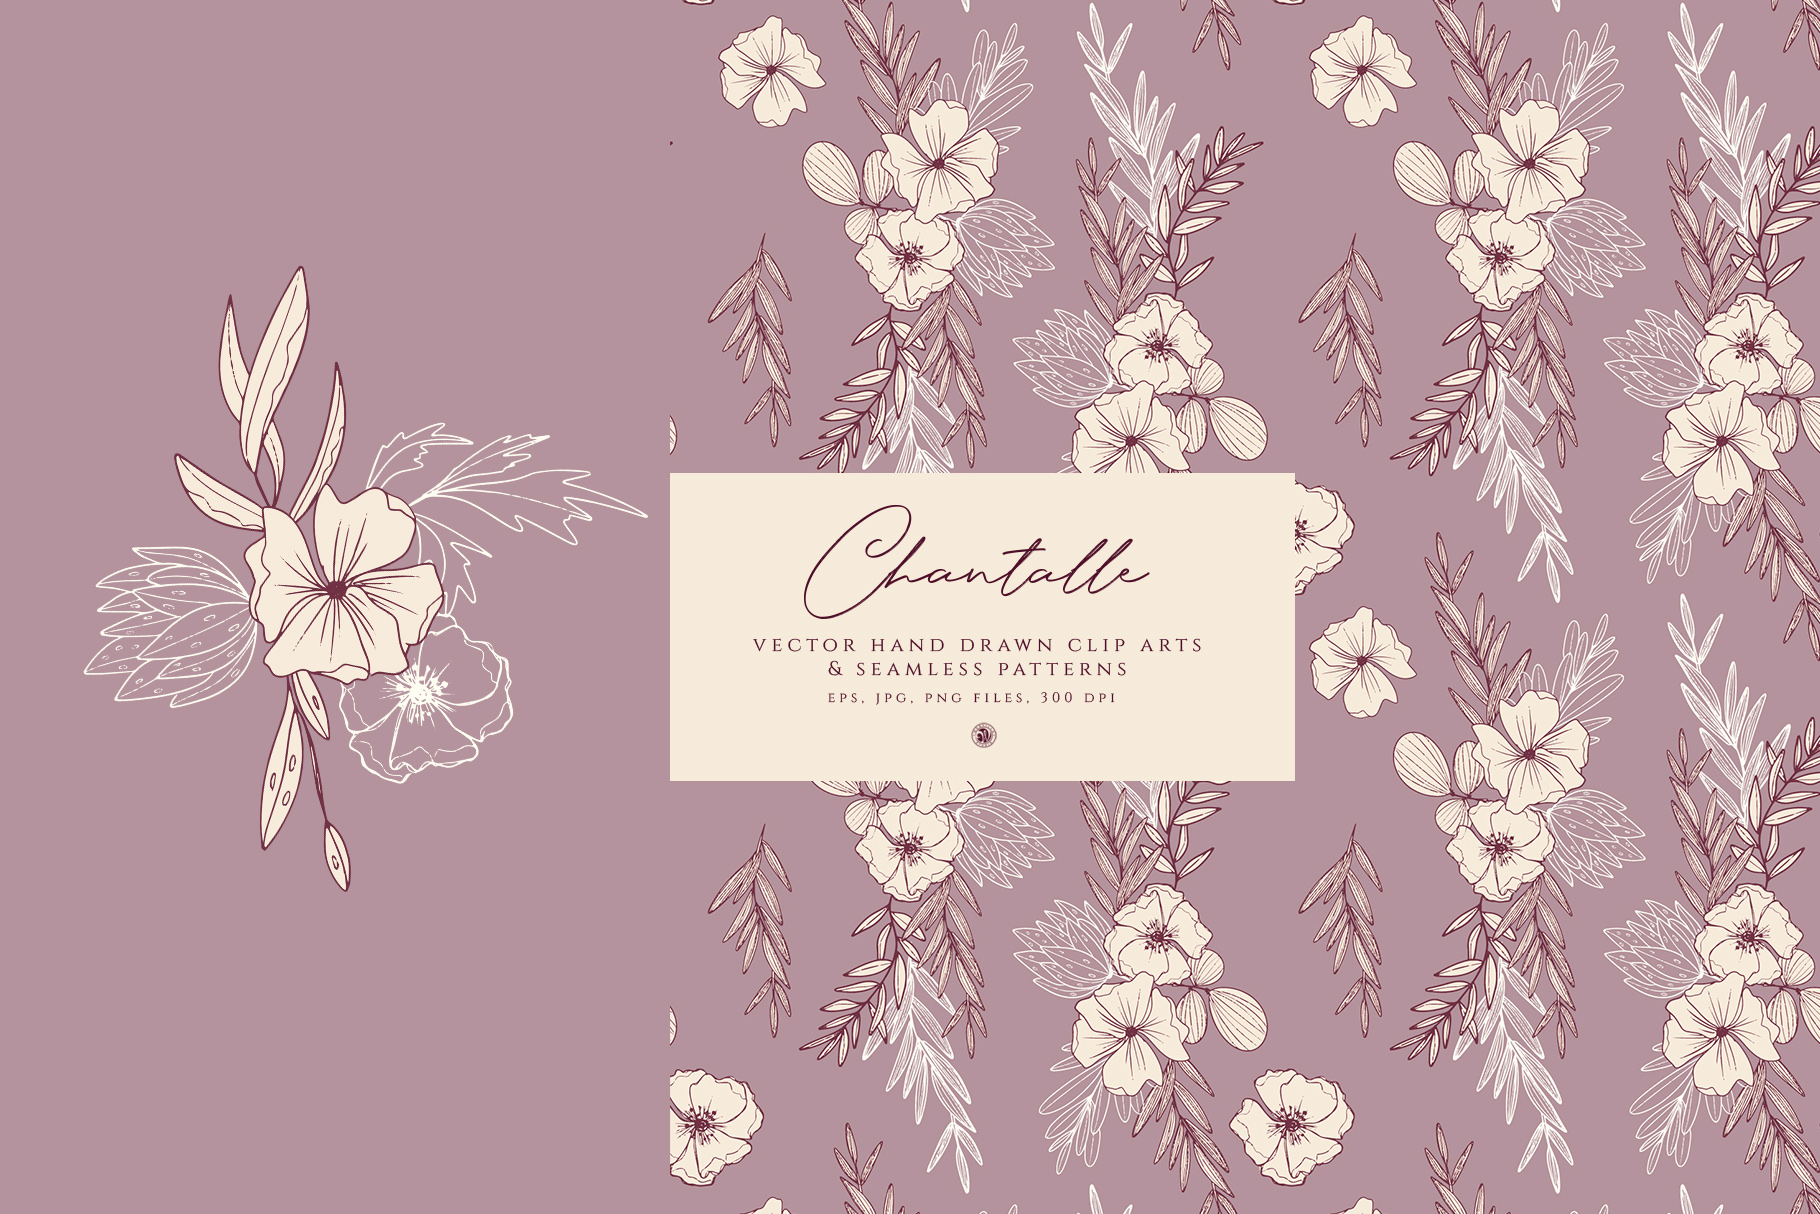 Chantalle Flowers example image 6